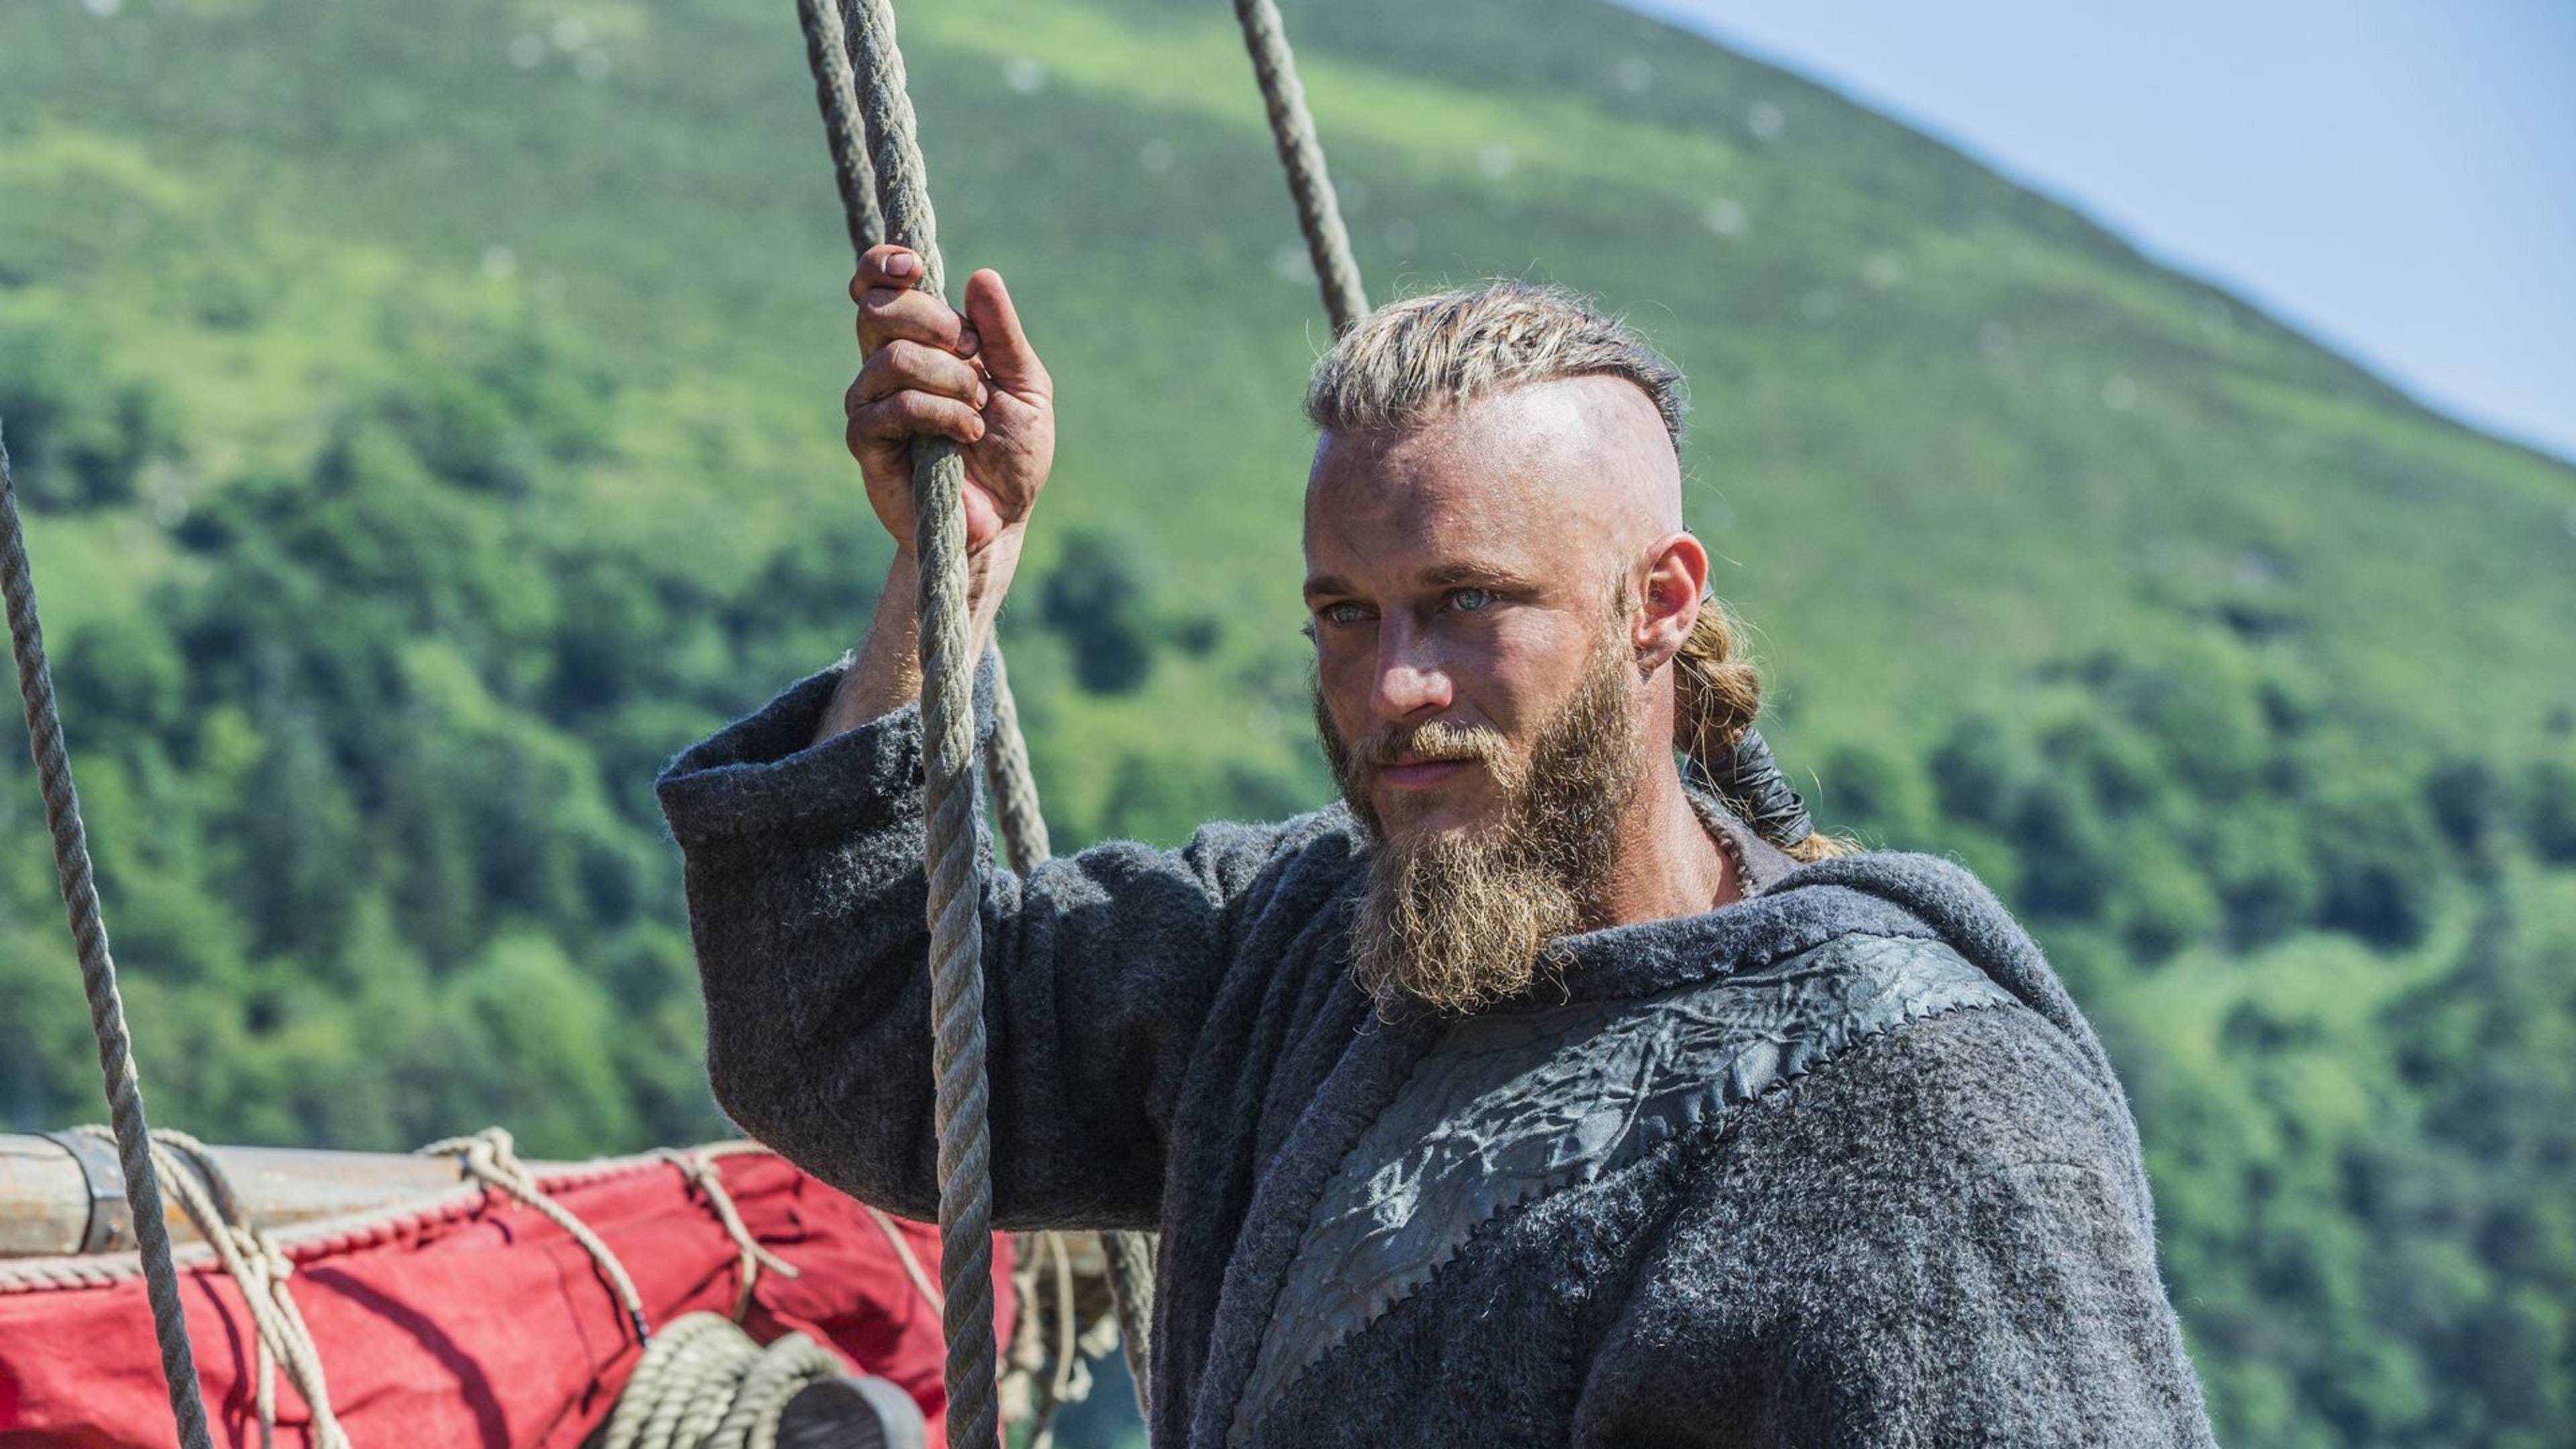 The Hairstyles of 'Vikings' Have Earned These